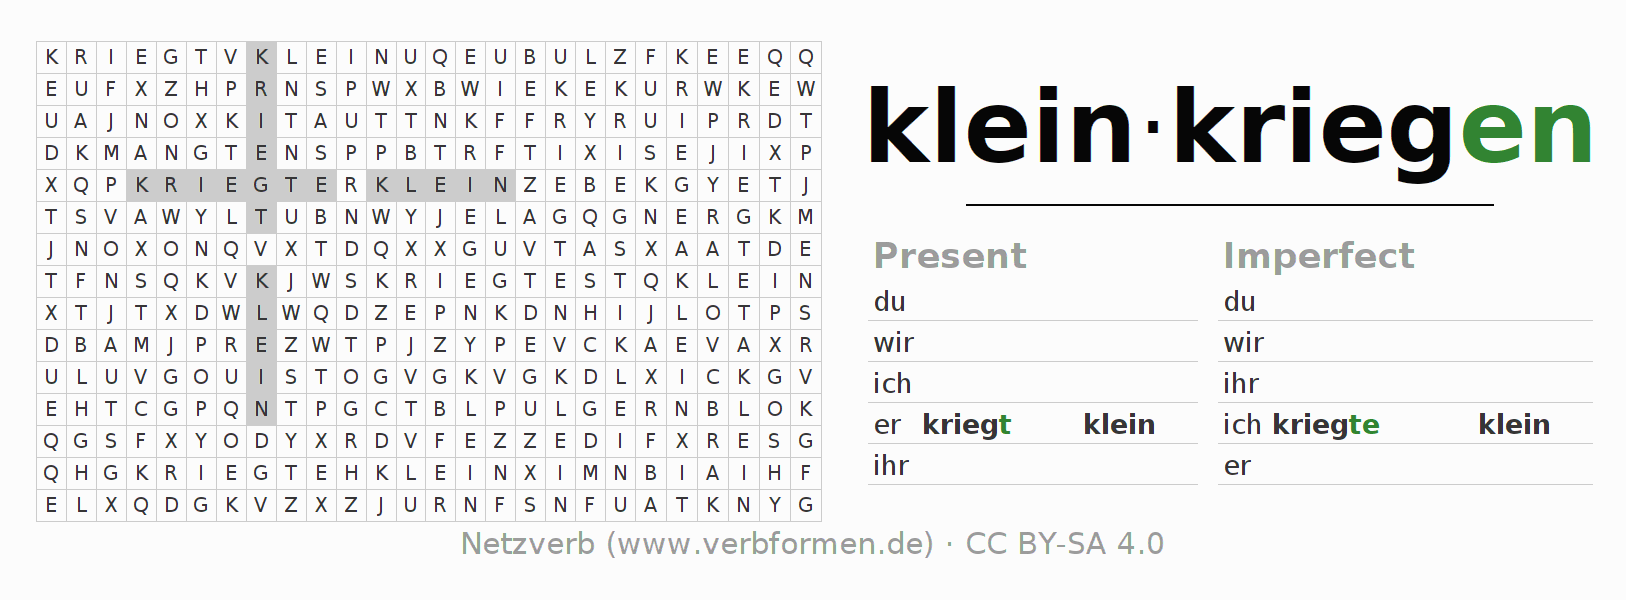 Word search puzzle for the conjugation of the verb kleinkriegen